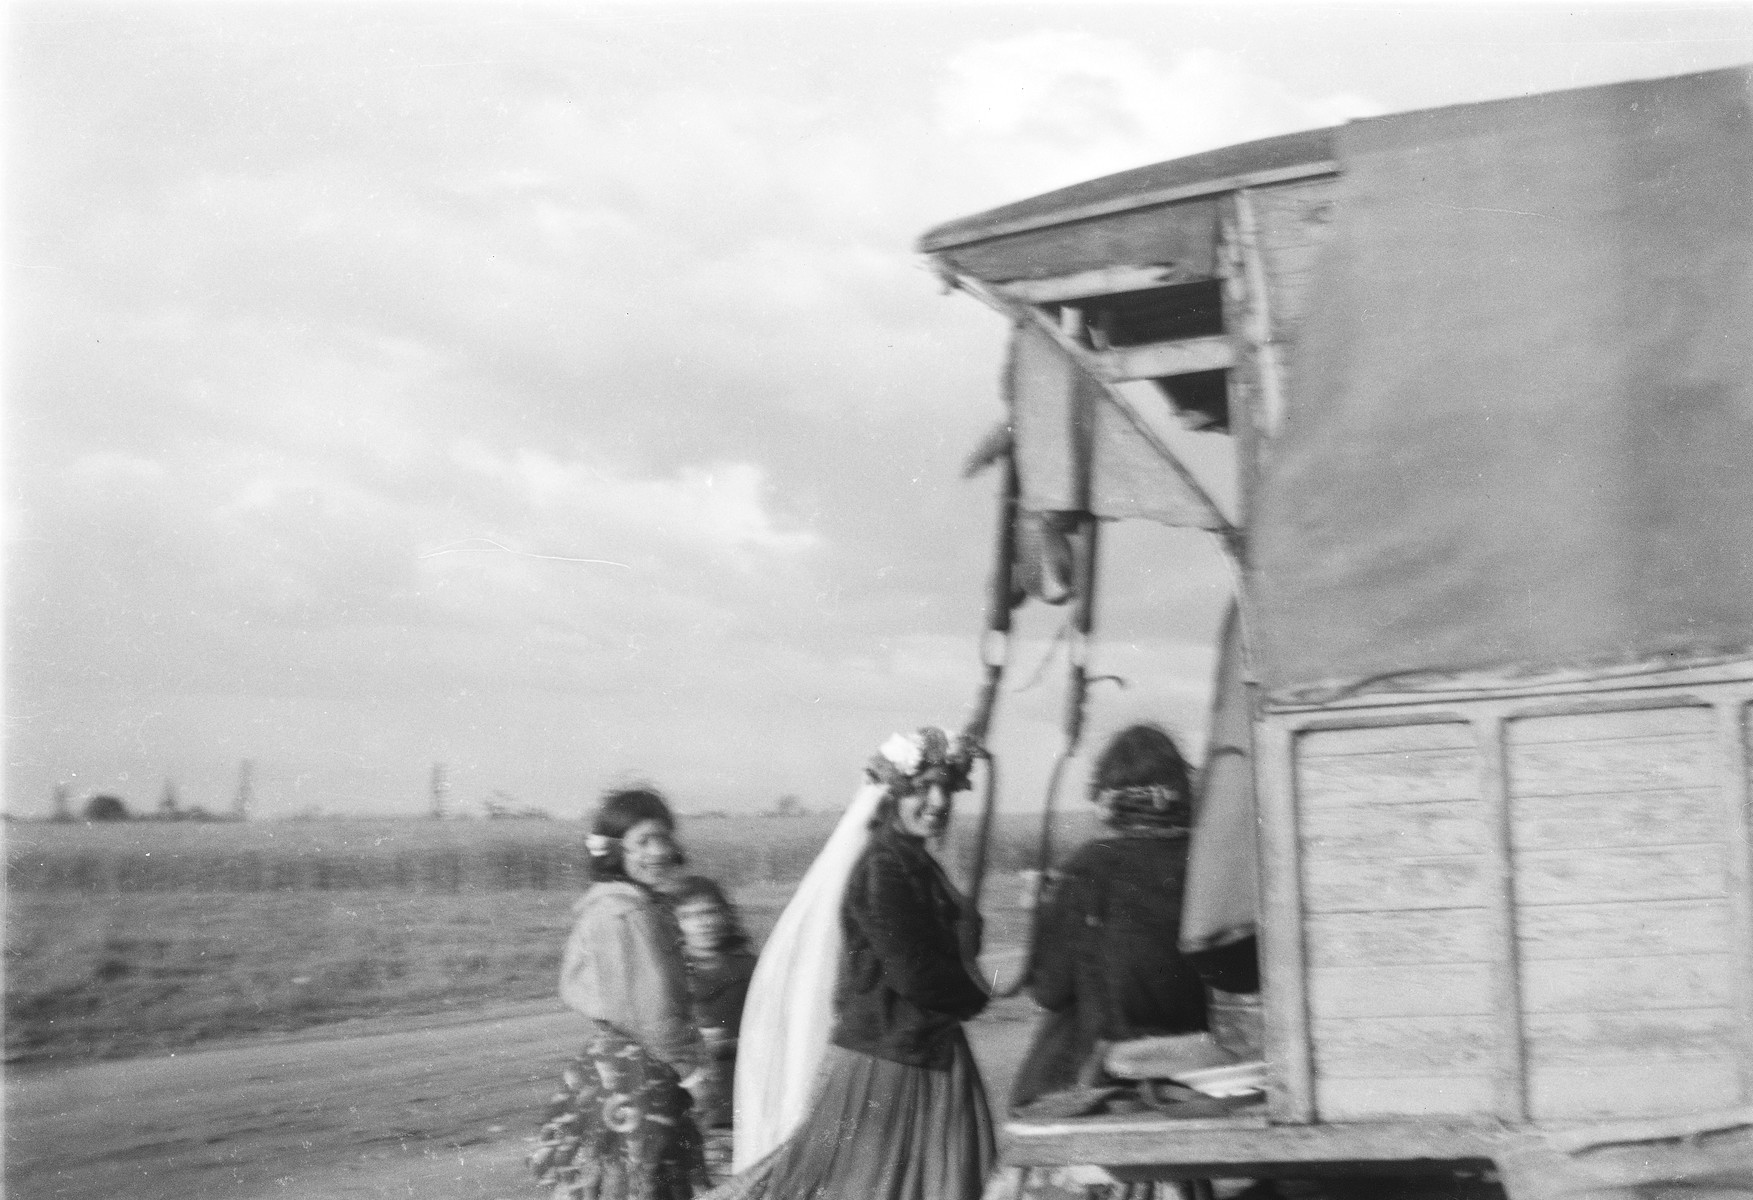 Several Romani (Gypsy) women, one wearing a long white head scarf, gather near a caravan (possibly as part of a wedding celebration).